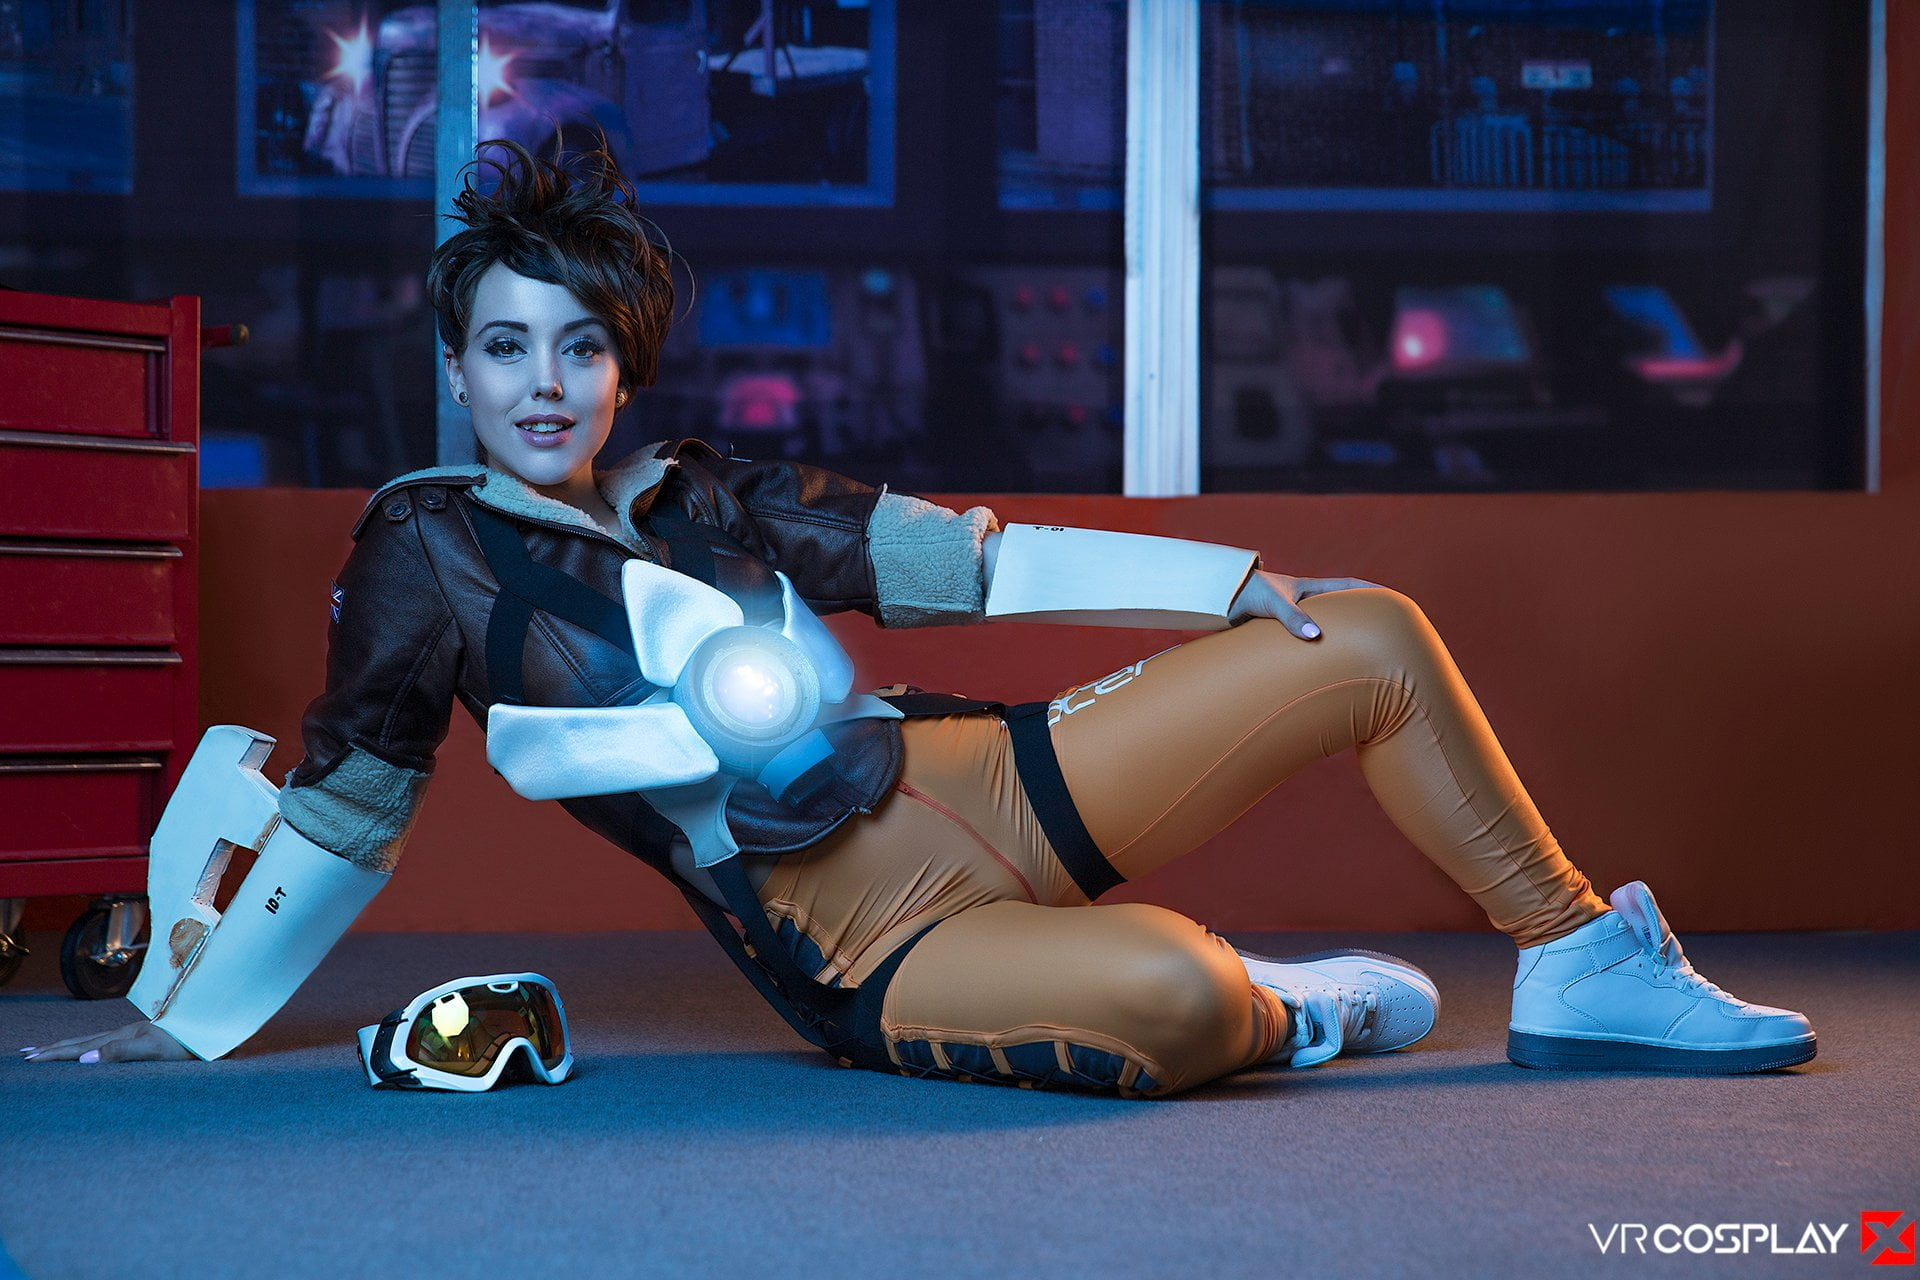 Overwatch cosplay porno